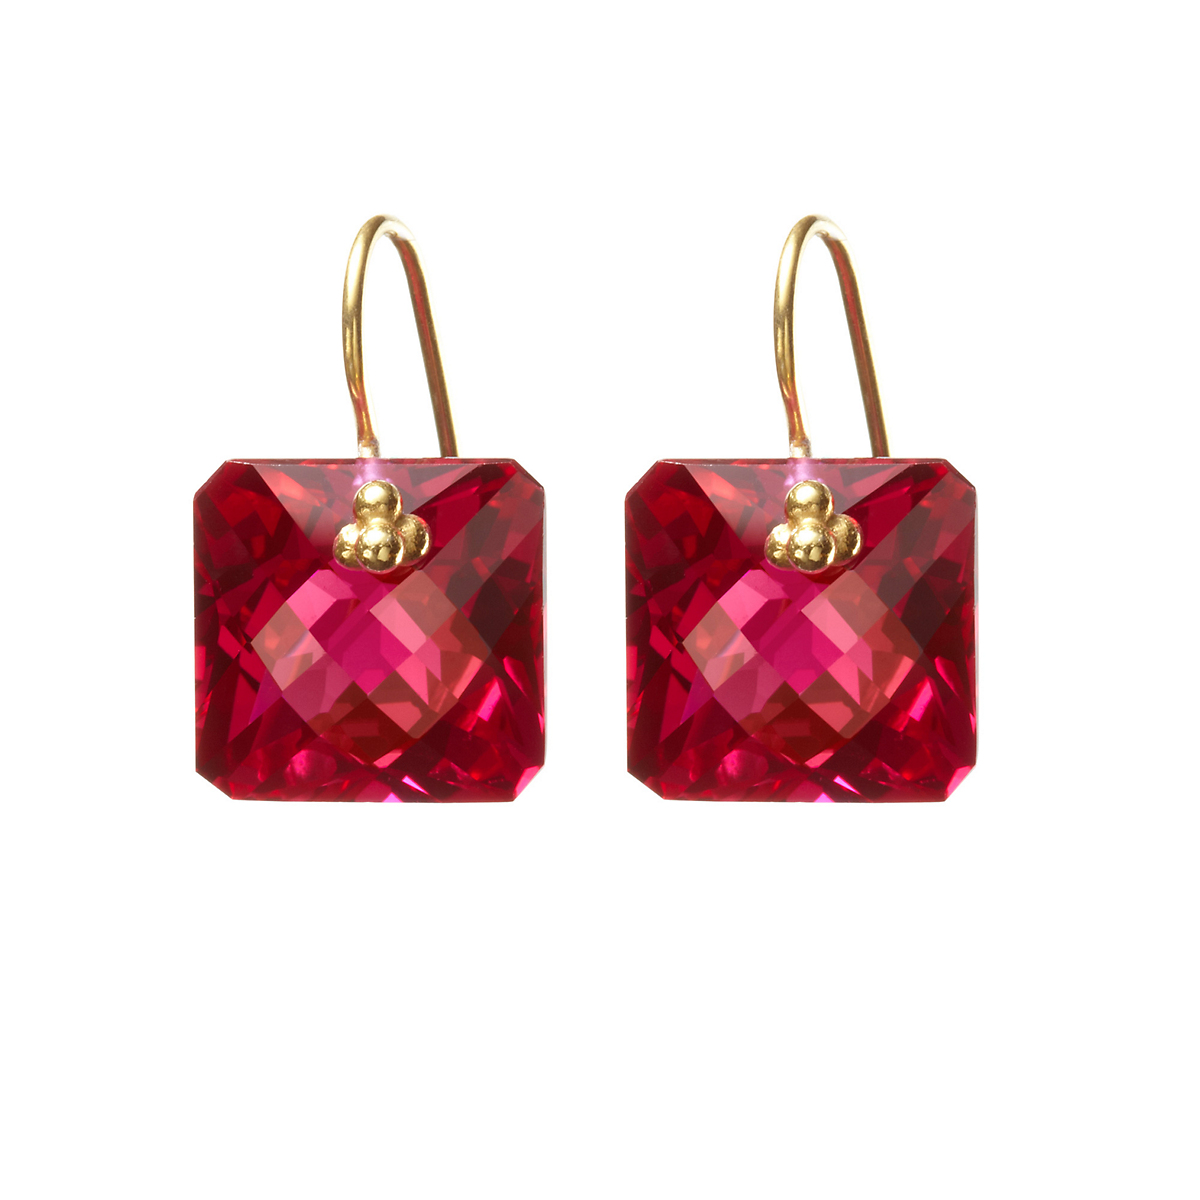 Nikki Baker Red Topaz Asscher Drop Earrings